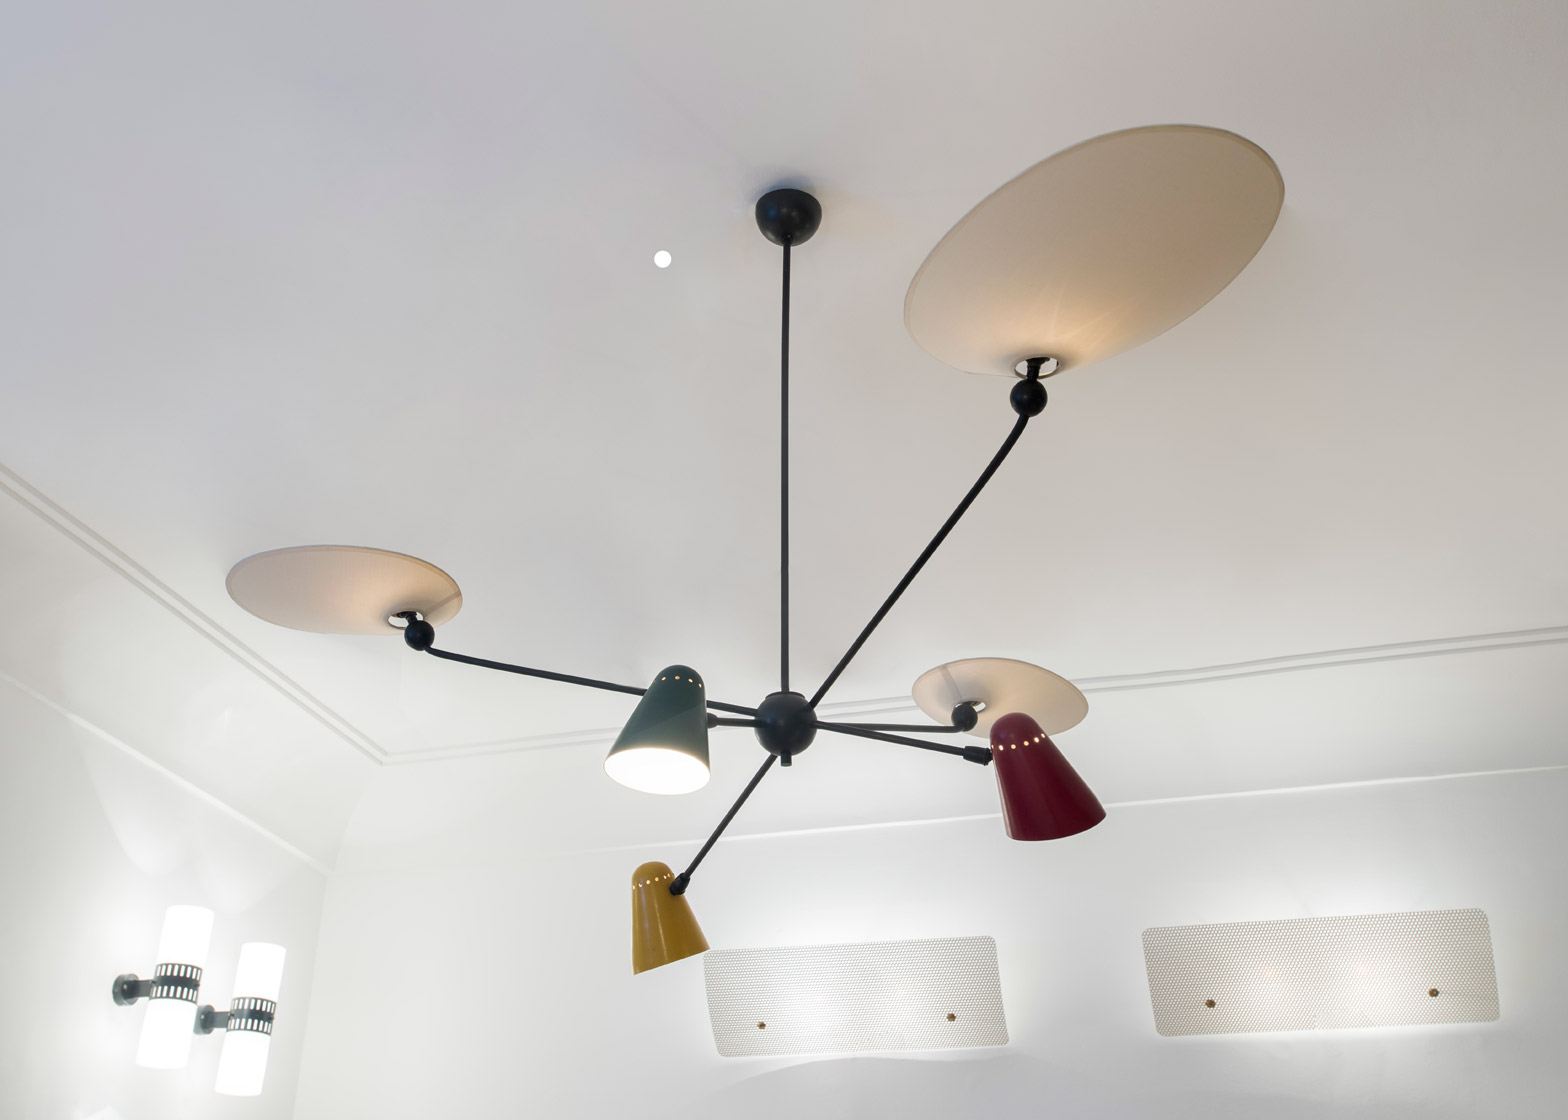 Robert Mathieu created his six-armed ceiling lamp in 1954. Photography by Deniz Guzel